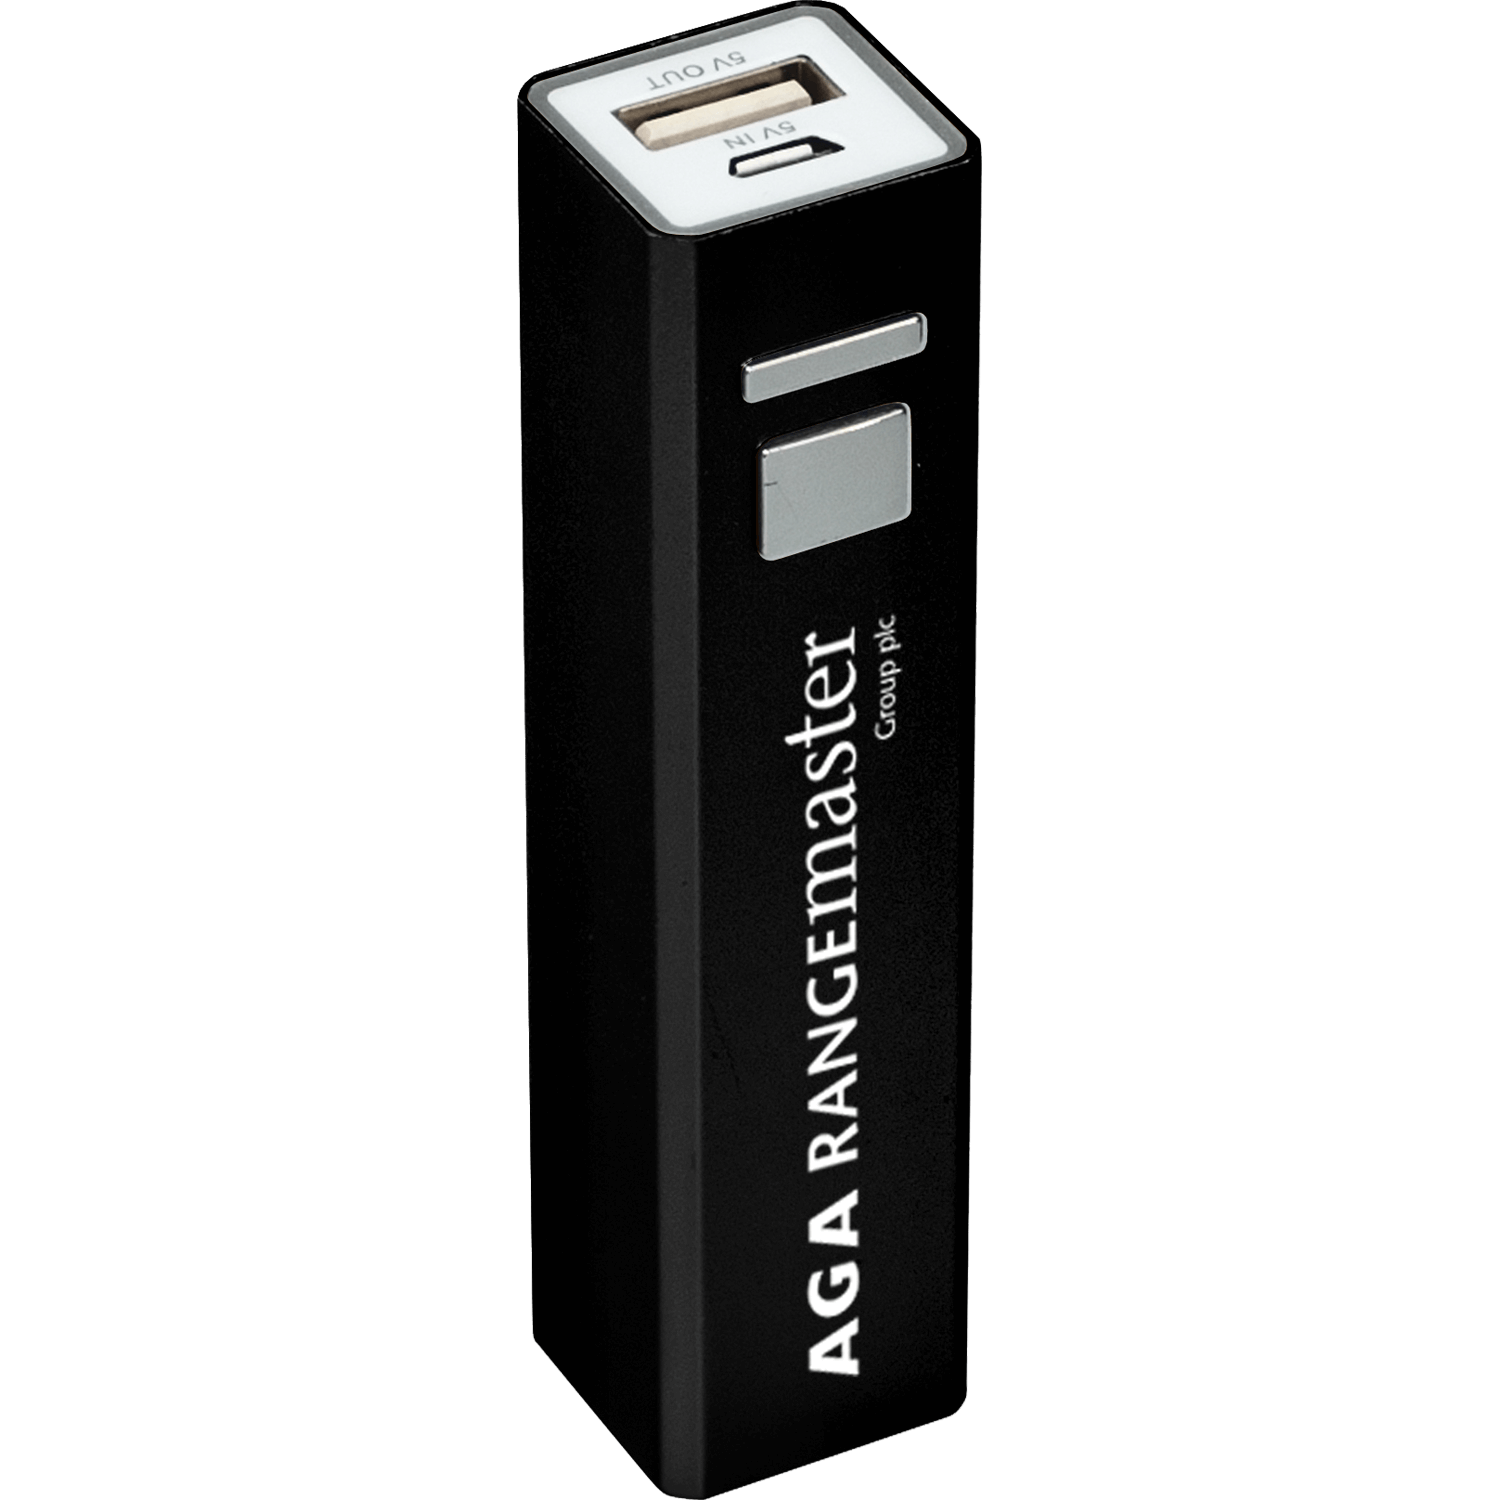 Tower Power Bank Charger